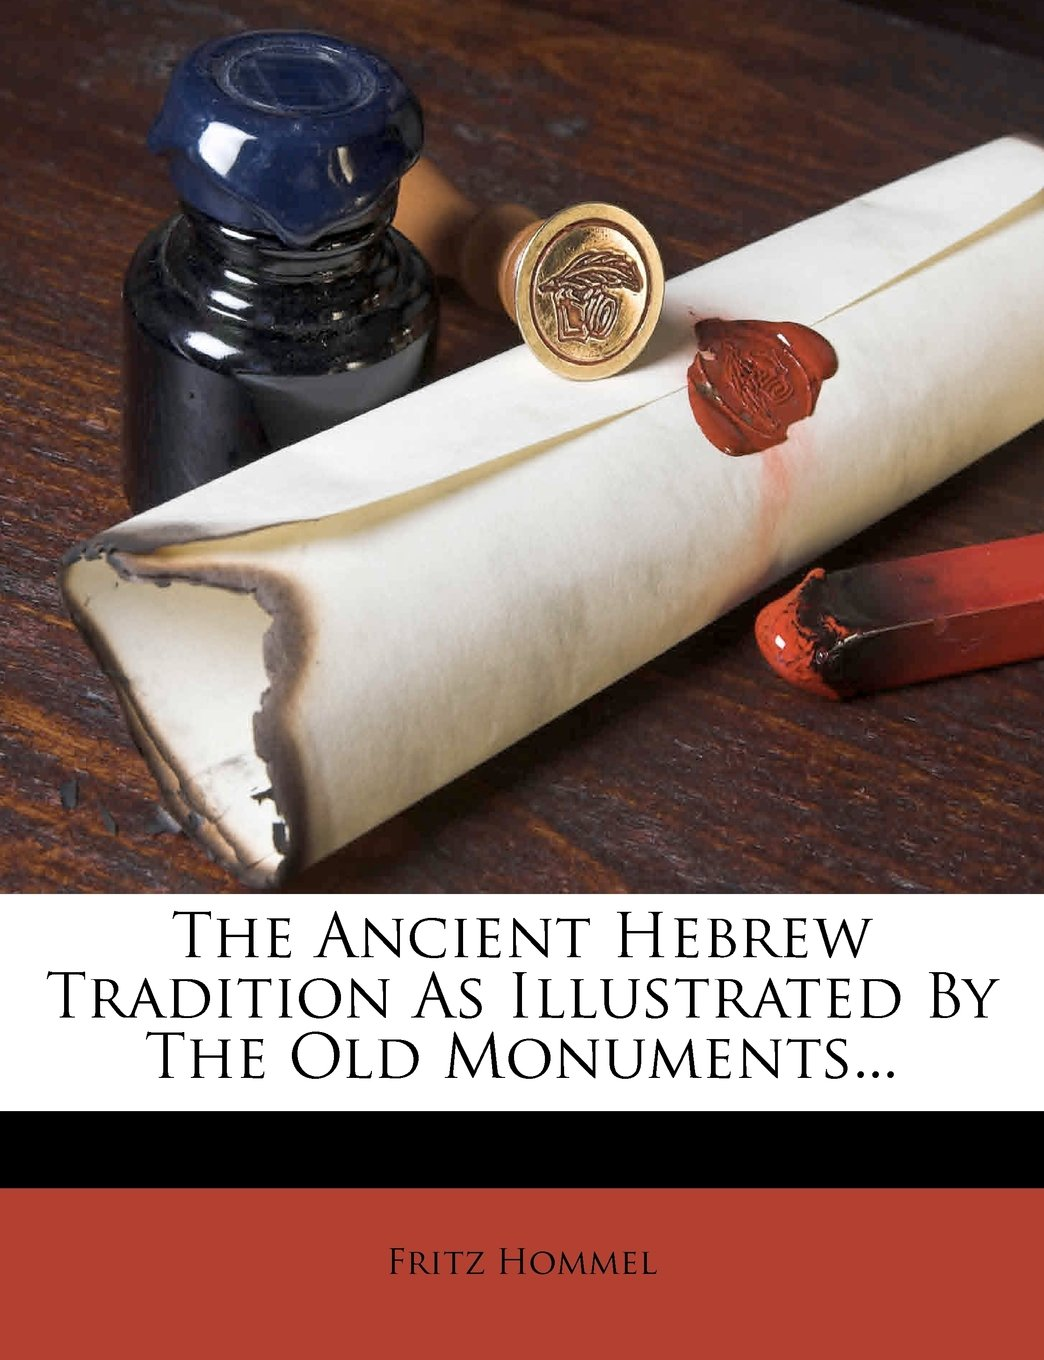 The Ancient Hebrew Tradition As Illustrated By The Old Monuments... PDF ePub fb2 book